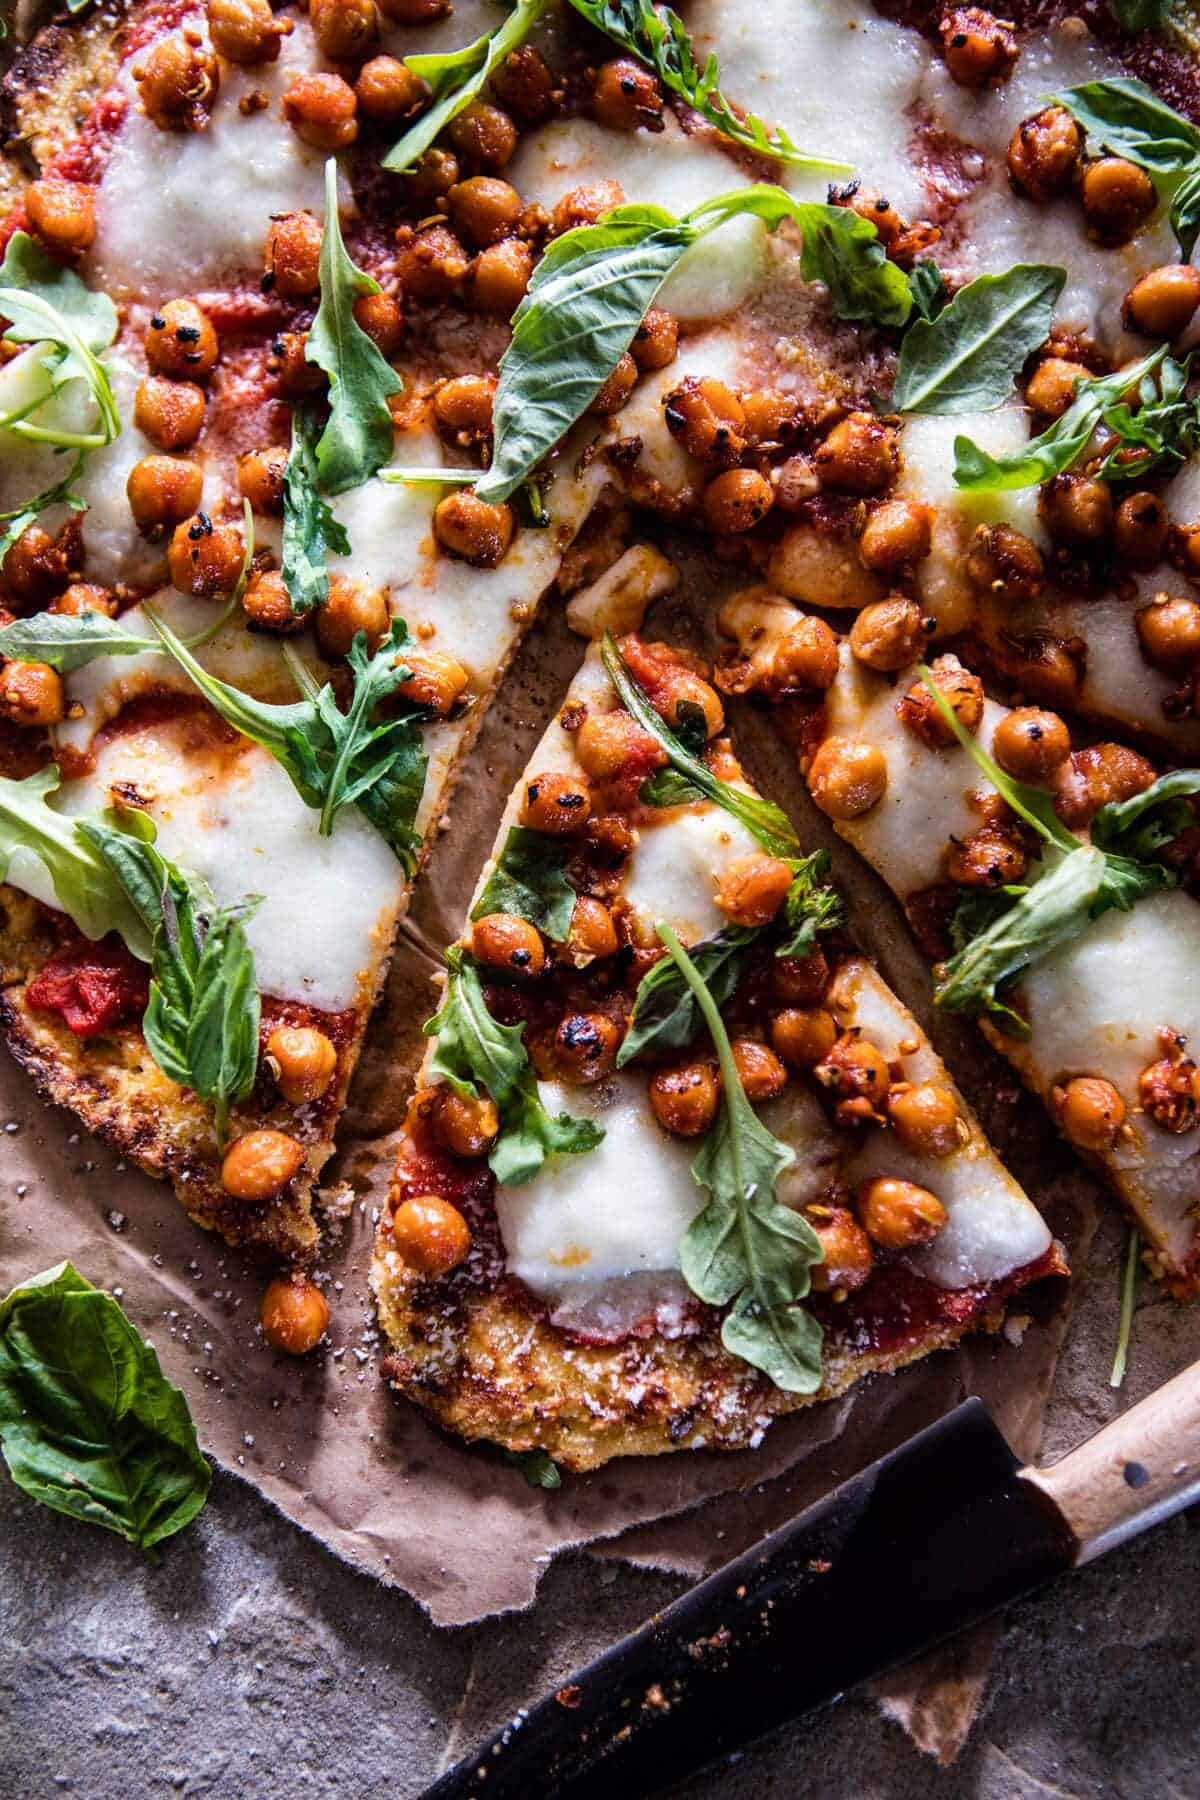 Cauliflower Crust Pizza with Chickpea Pepperoni | halfbakedharvest.com @hbharvest